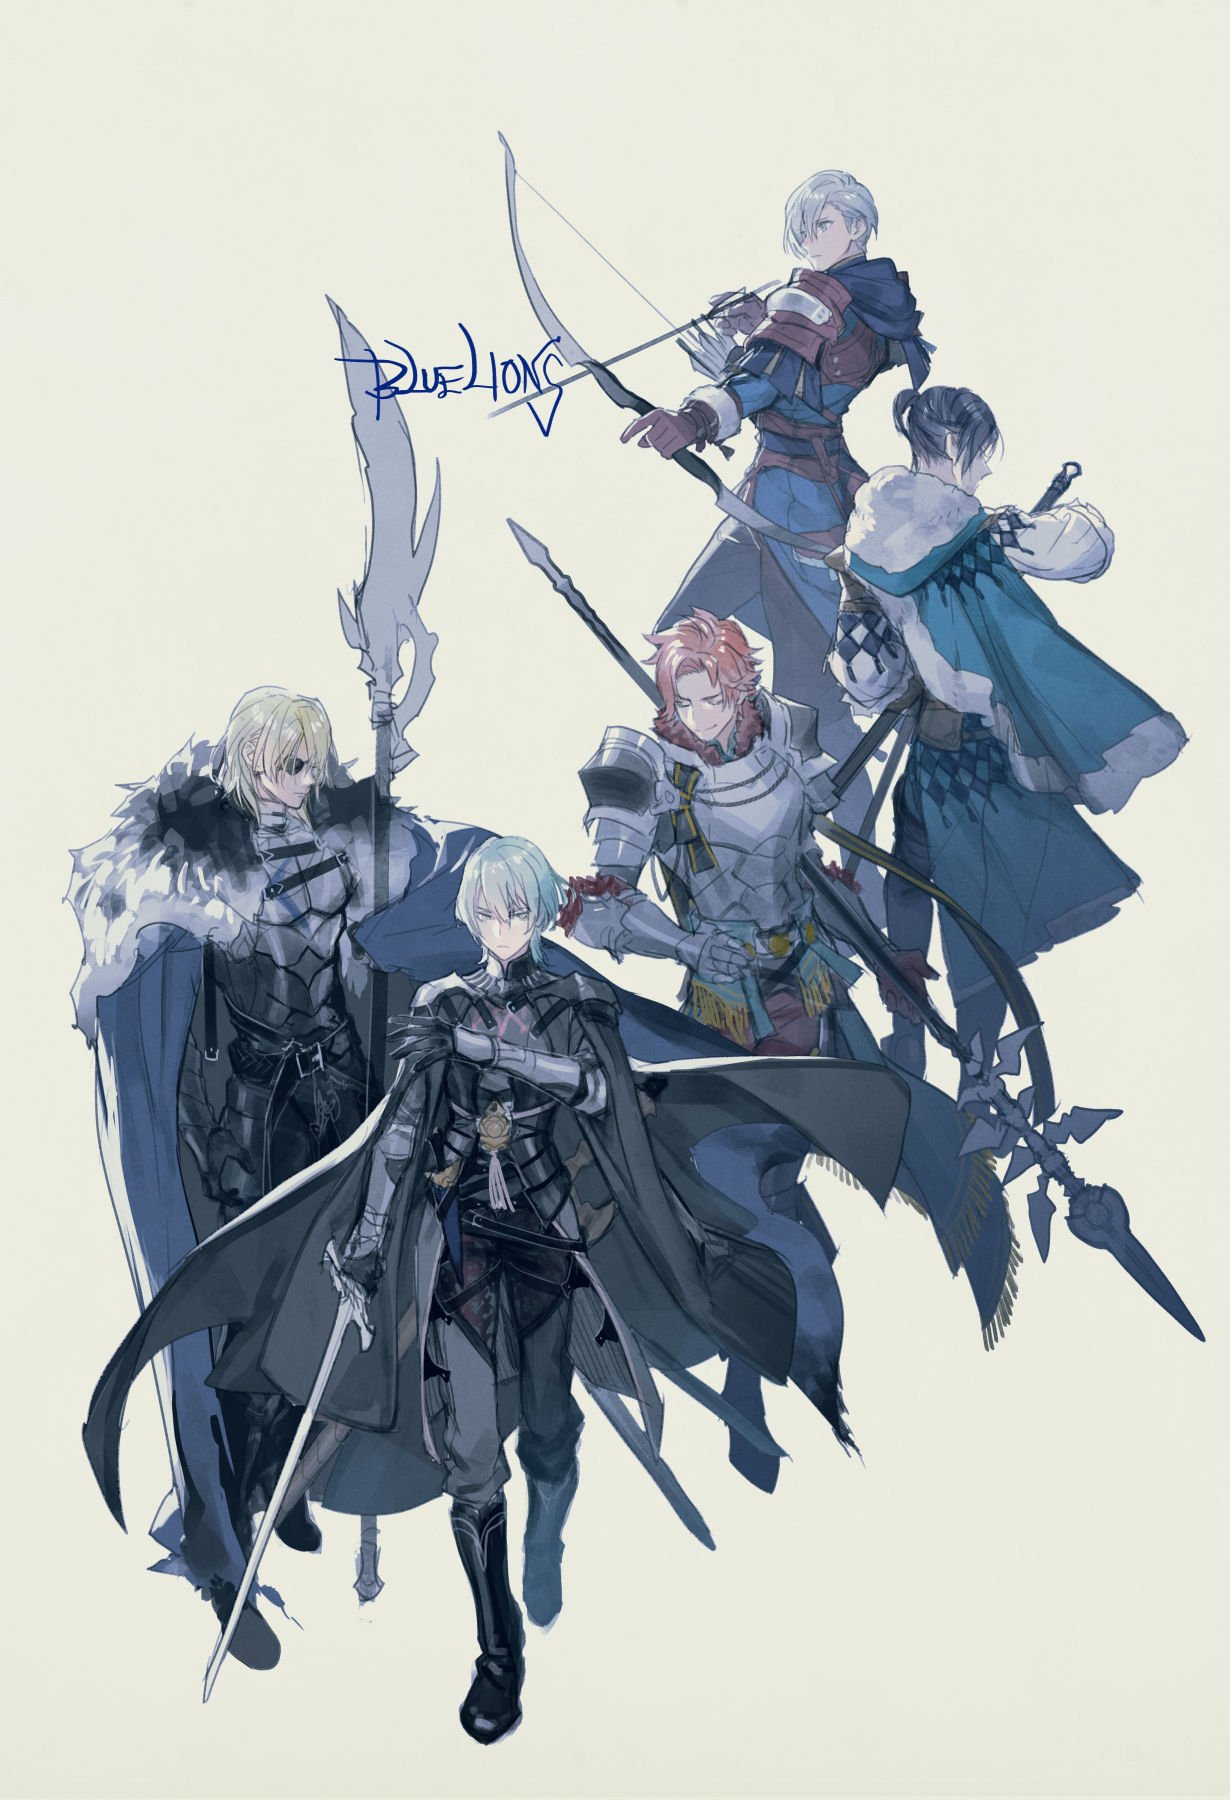 5boys areadbhar_(fire_emblem) armor armored_boots arrow_(projectile) ashe_ubert back bangs belt black_cape black_footwear black_gloves black_hair black_pants blonde_hair blue_cloak boots bow_(weapon) breastplate brown_gloves byleth_(fire_emblem) byleth_(fire_emblem)_(male) cape cloak closed_eyes closed_mouth commentary dimitri_alexandre_blaiddyd english_text eyepatch felix_hugo_fraldarius fire_emblem fire_emblem:_three_houses full_body fur-trimmed_cape fur_trim gauntlets gloves green_eyes green_hair grey_background grey_eyes hair_between_eyes highres holding holding_weapon lance leather leather_gloves looking_at_viewer medium_hair multiple_boys orange_hair p-nekor pants parted_bangs polearm ponytail quiver short_hair shoulder_armor silver_hair simple_background spear sword sword_of_the_creator sylvain_jose_gautier vambraces waistcoat walking weapon